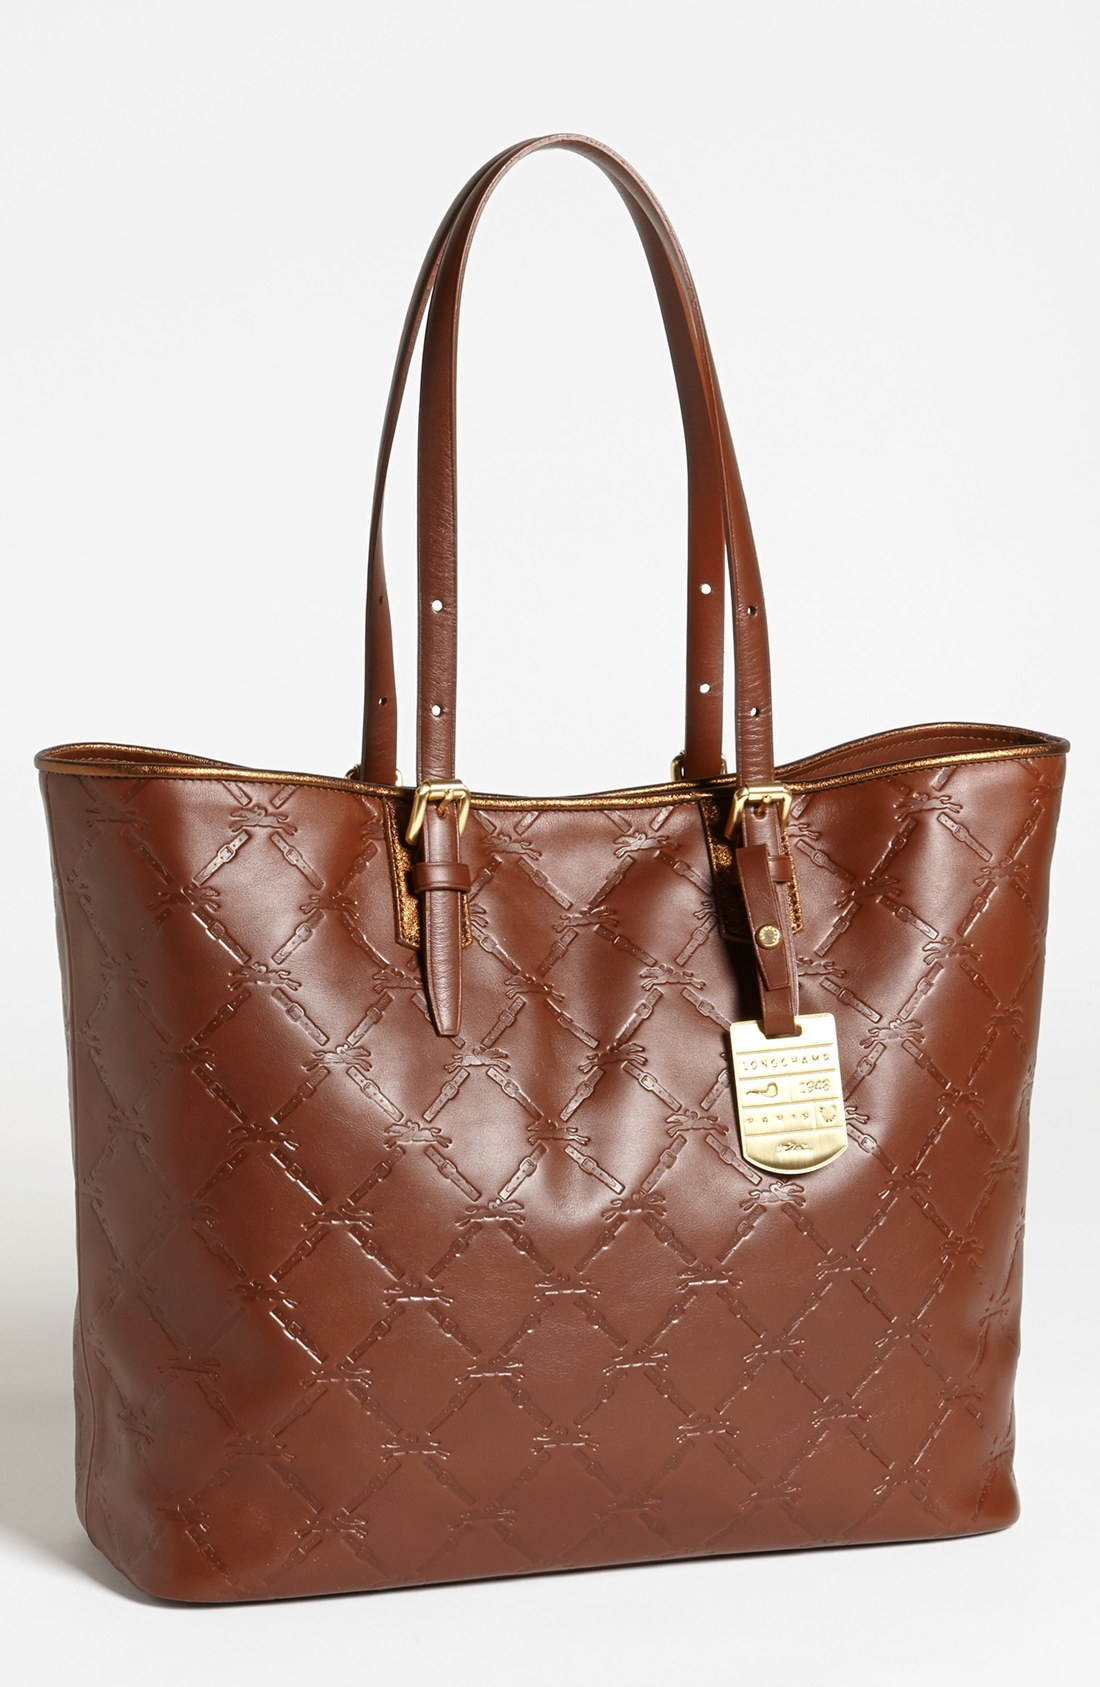 longchamp lm cuir medium leather tote in brown lyst. Black Bedroom Furniture Sets. Home Design Ideas